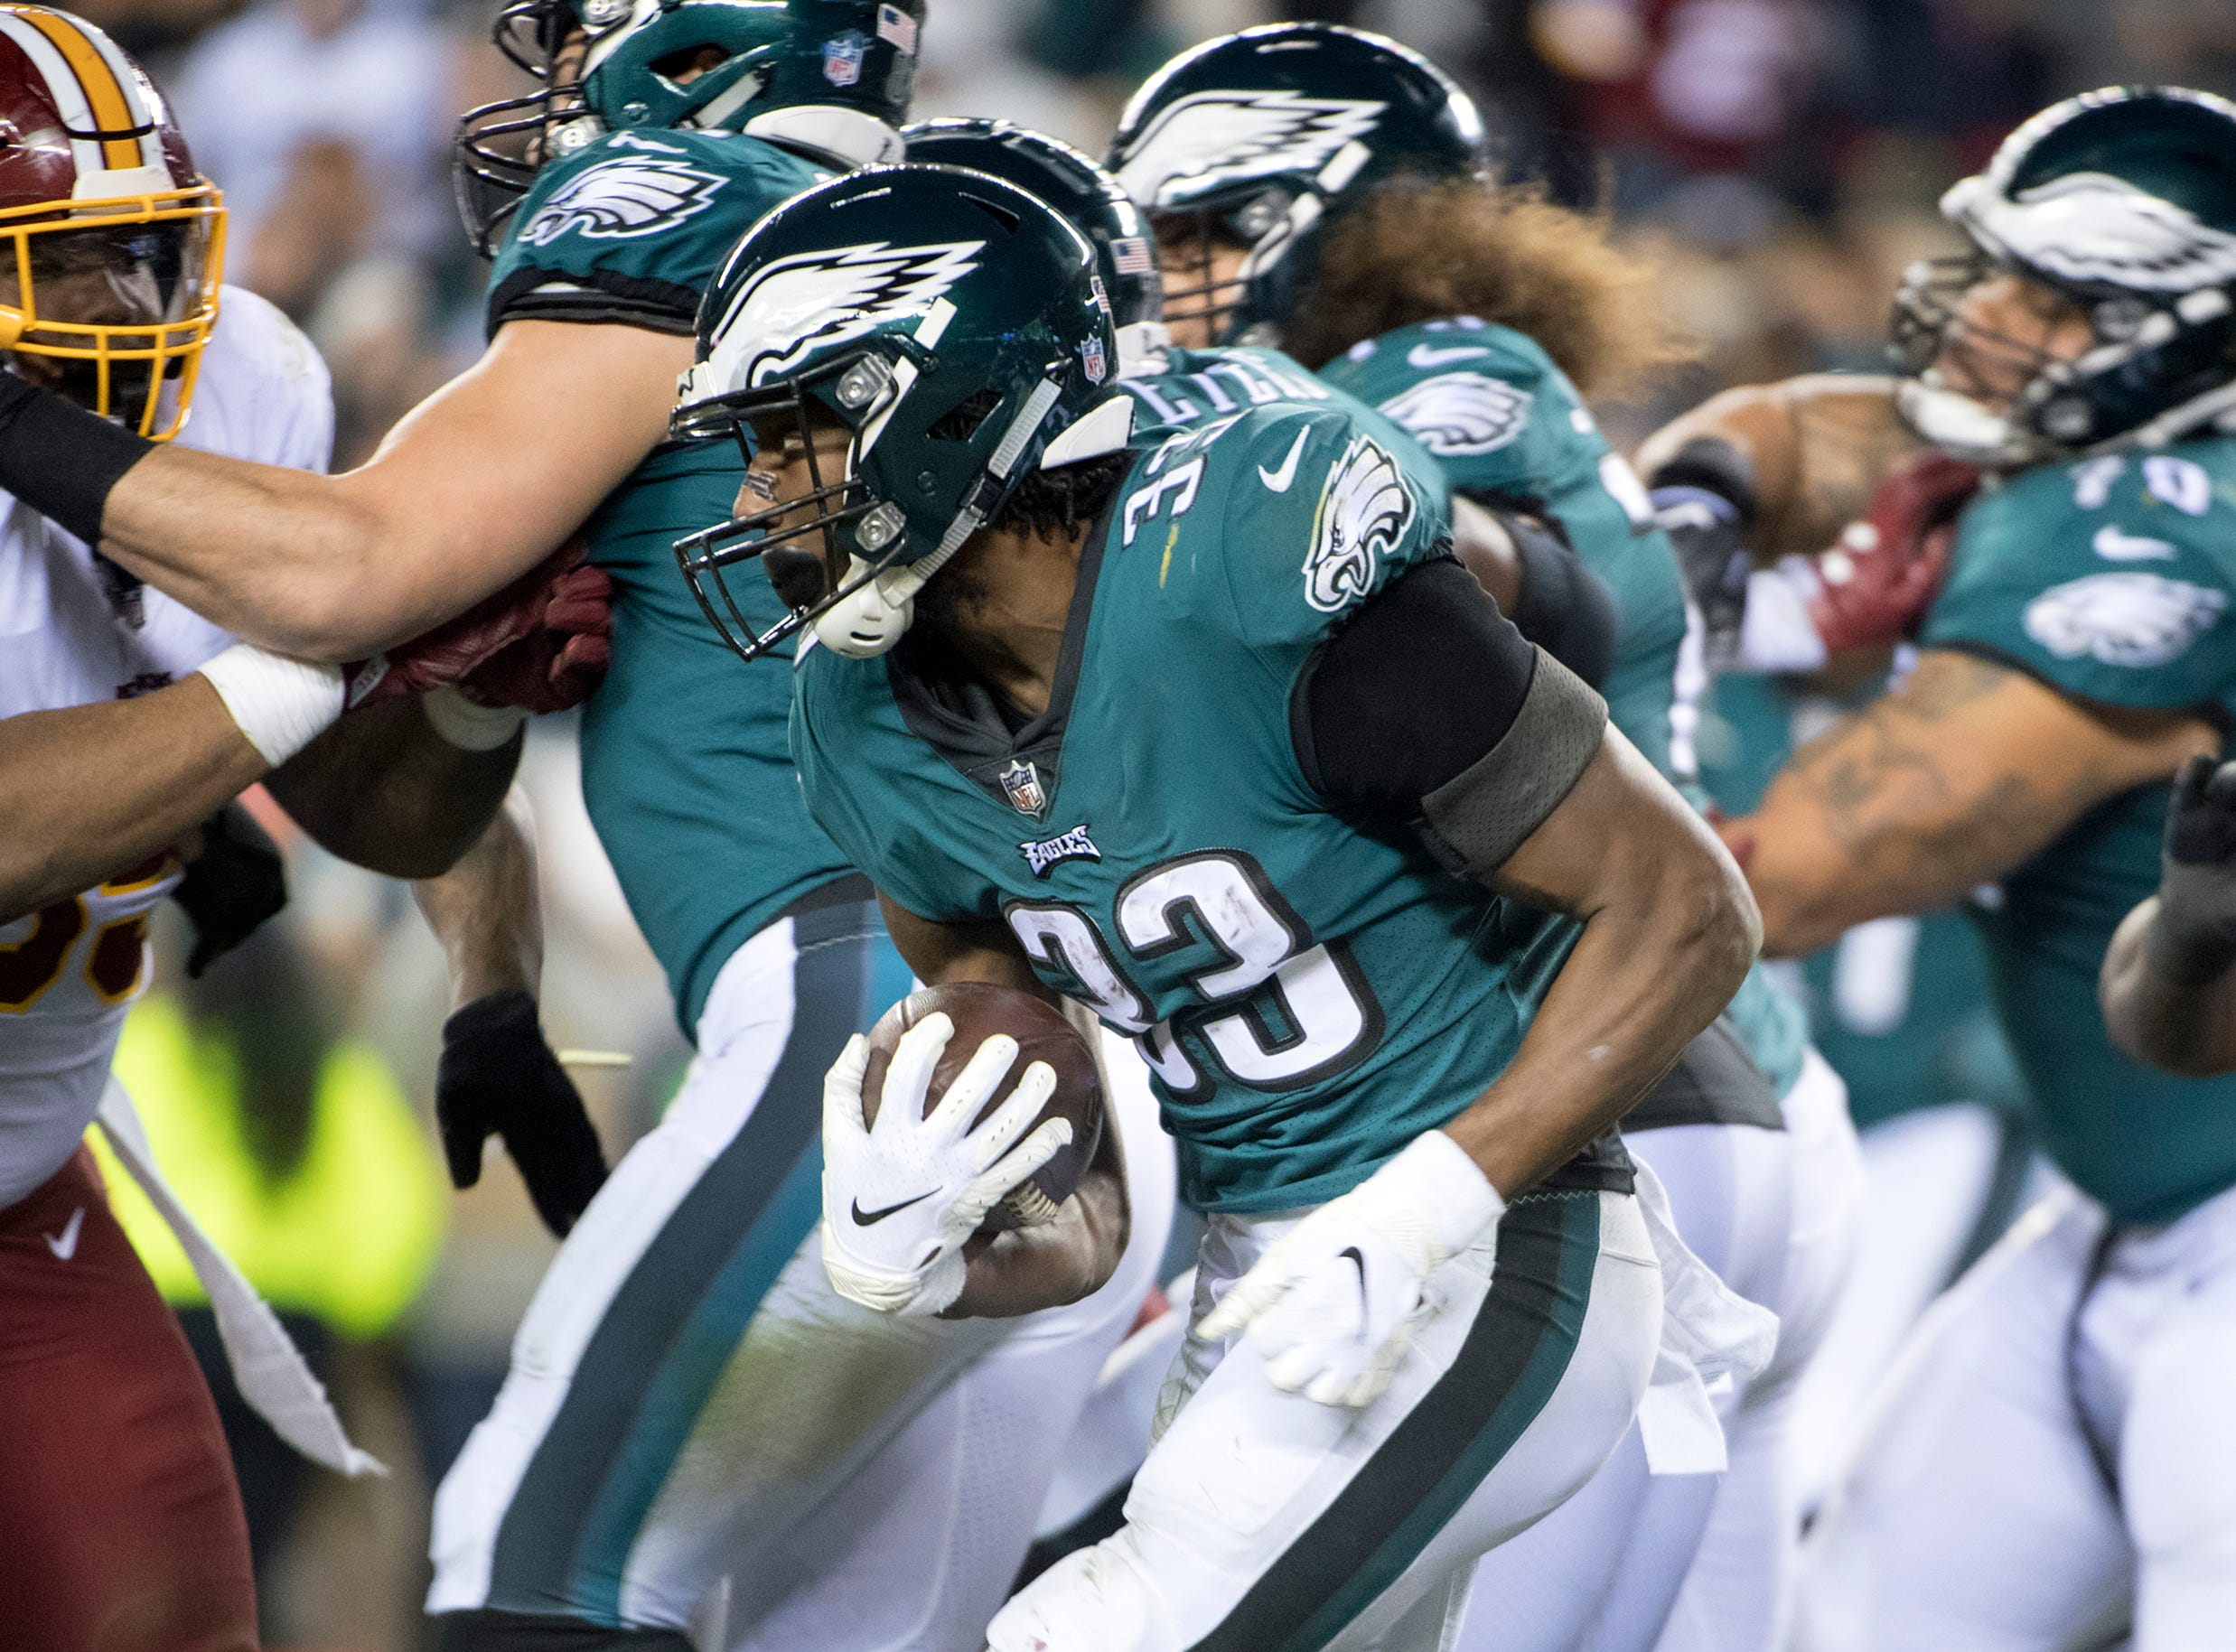 Eagles' Josh Adams (33) carries against Washington Monday, Dec. 3, 2018 in Philadelphia. The Eagles won 28-13.